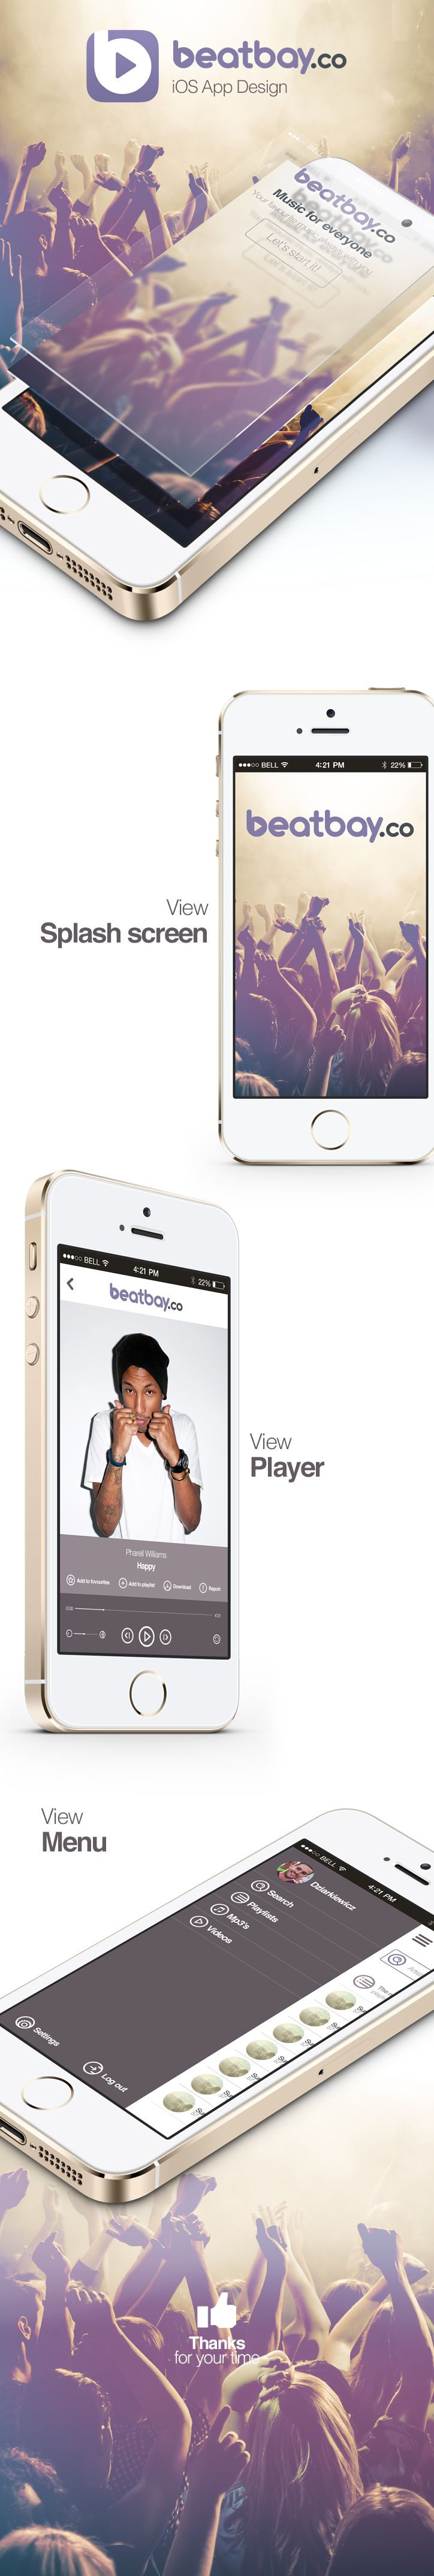 Mobile application for mp3 player